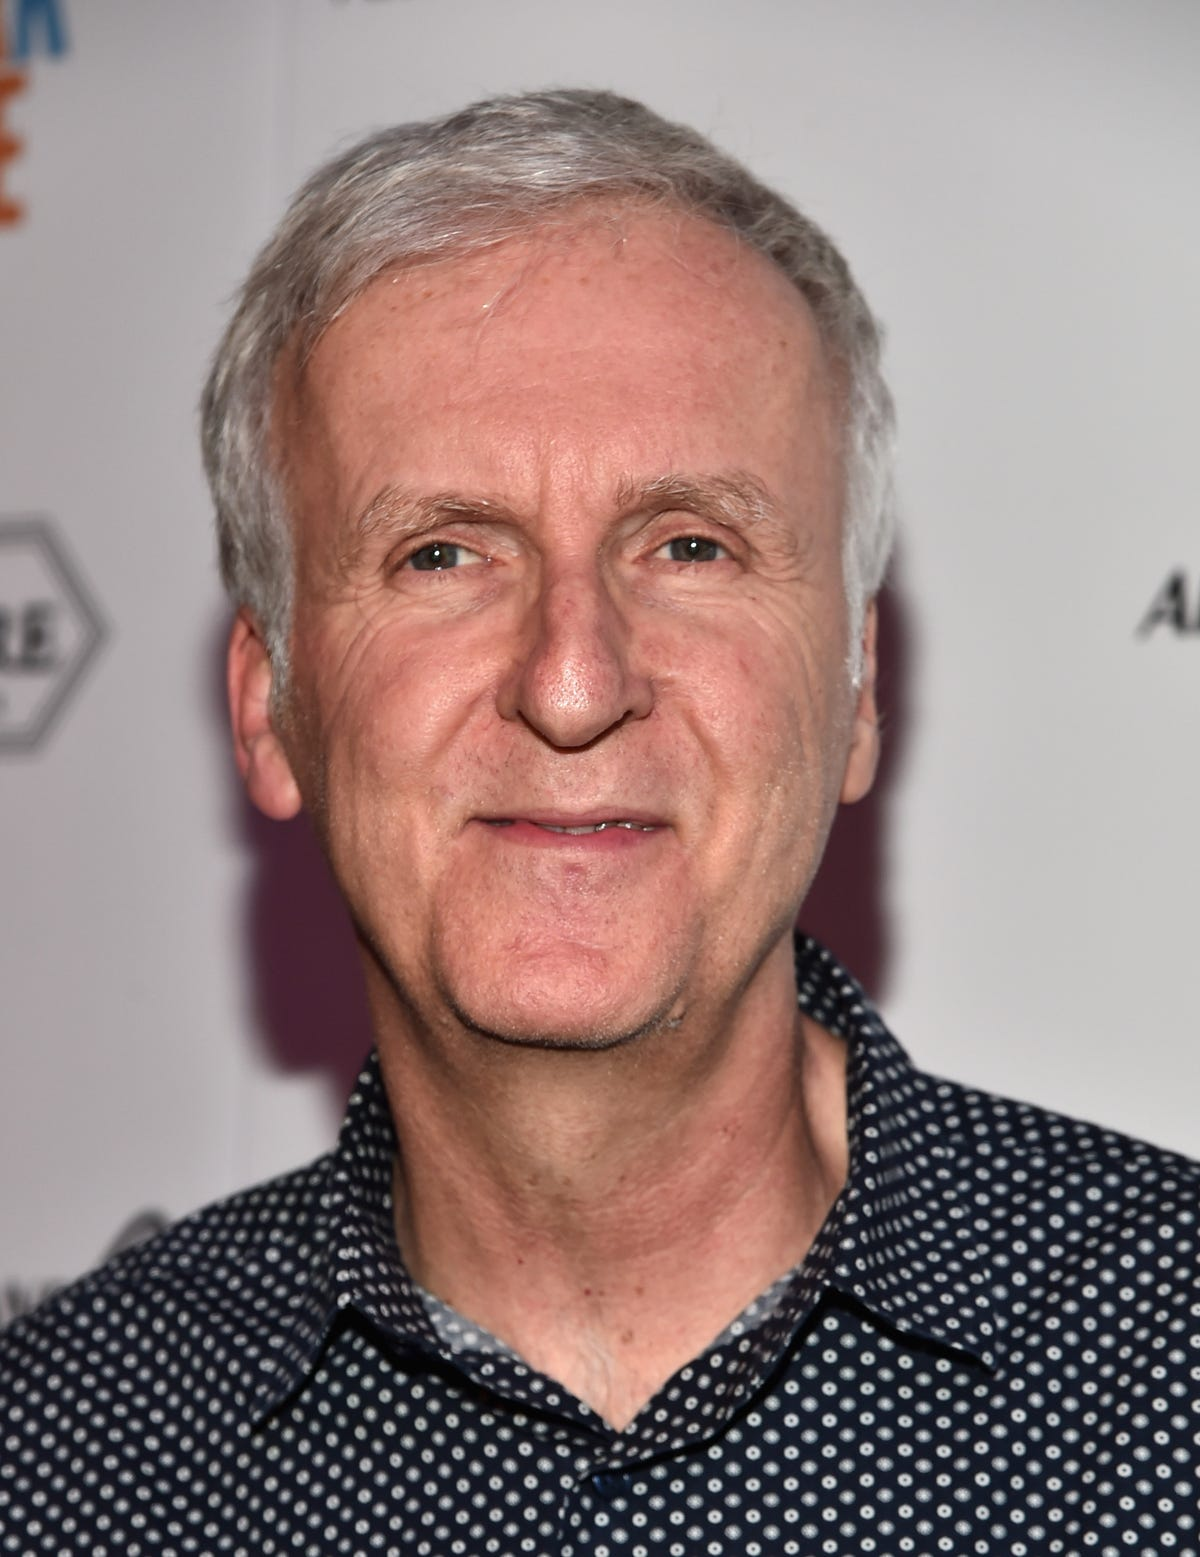 James Cameron announces another 'Avatar 2' delay, won't come out in 2018